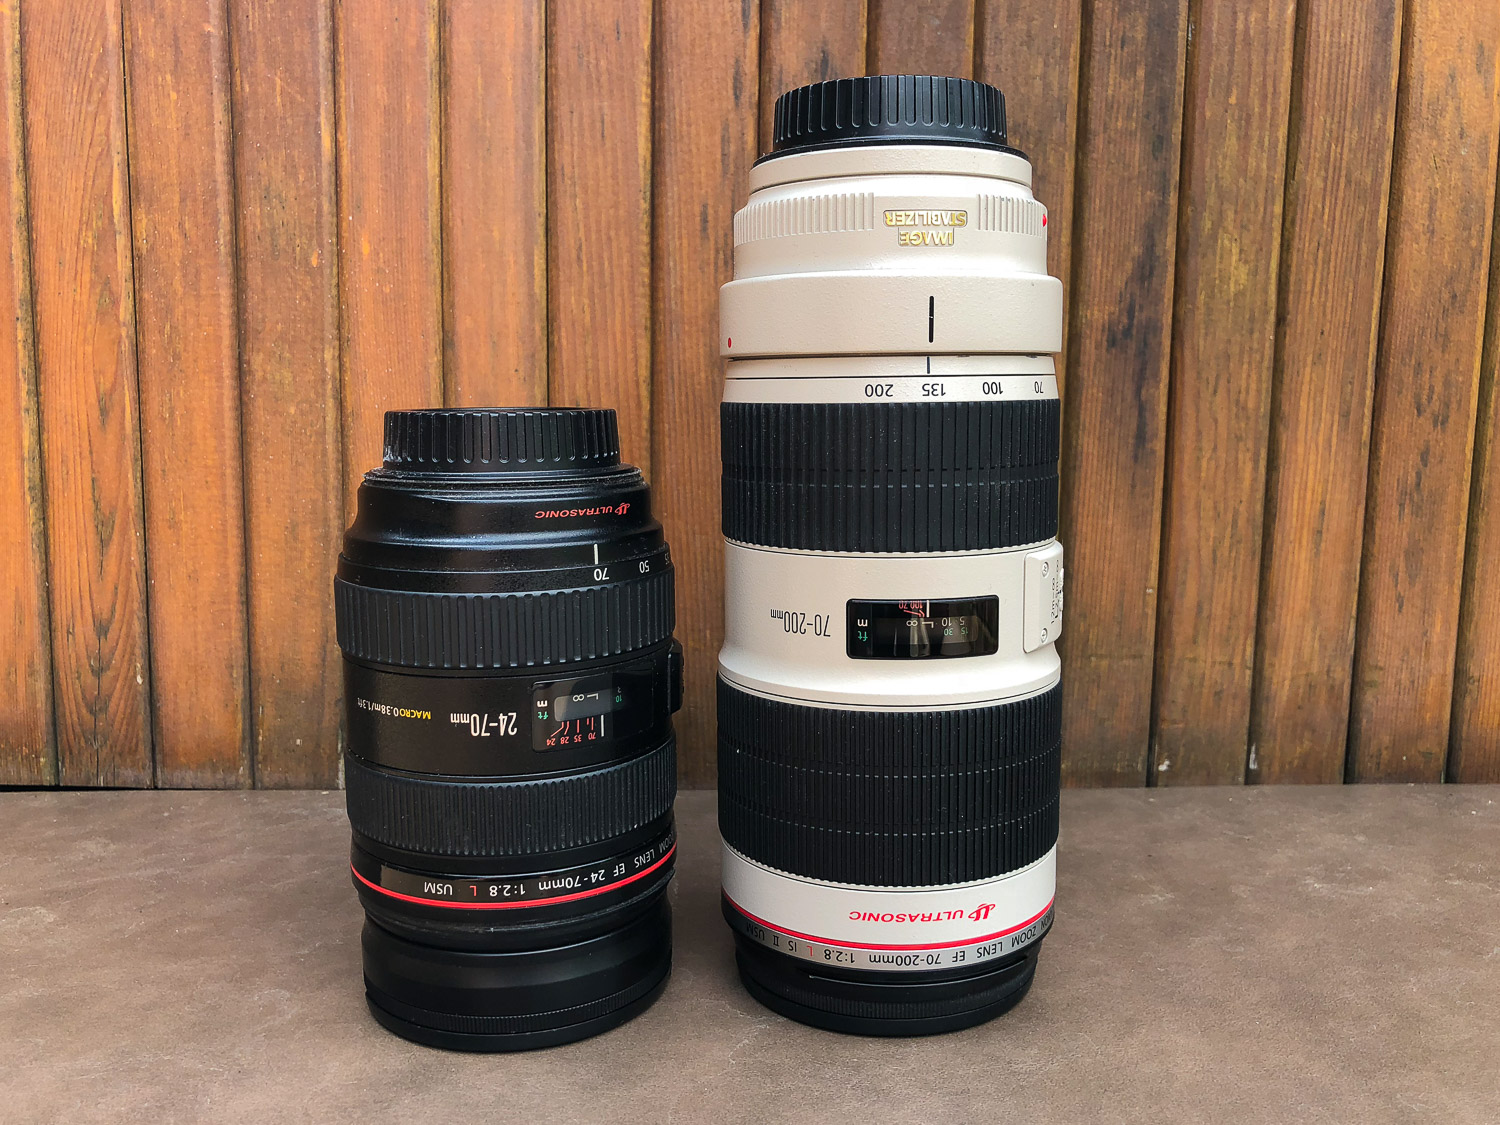 24-70mm and 70-200mm lenses - The First 10 Things You Need to Buy After Your Camera for Travel Photography